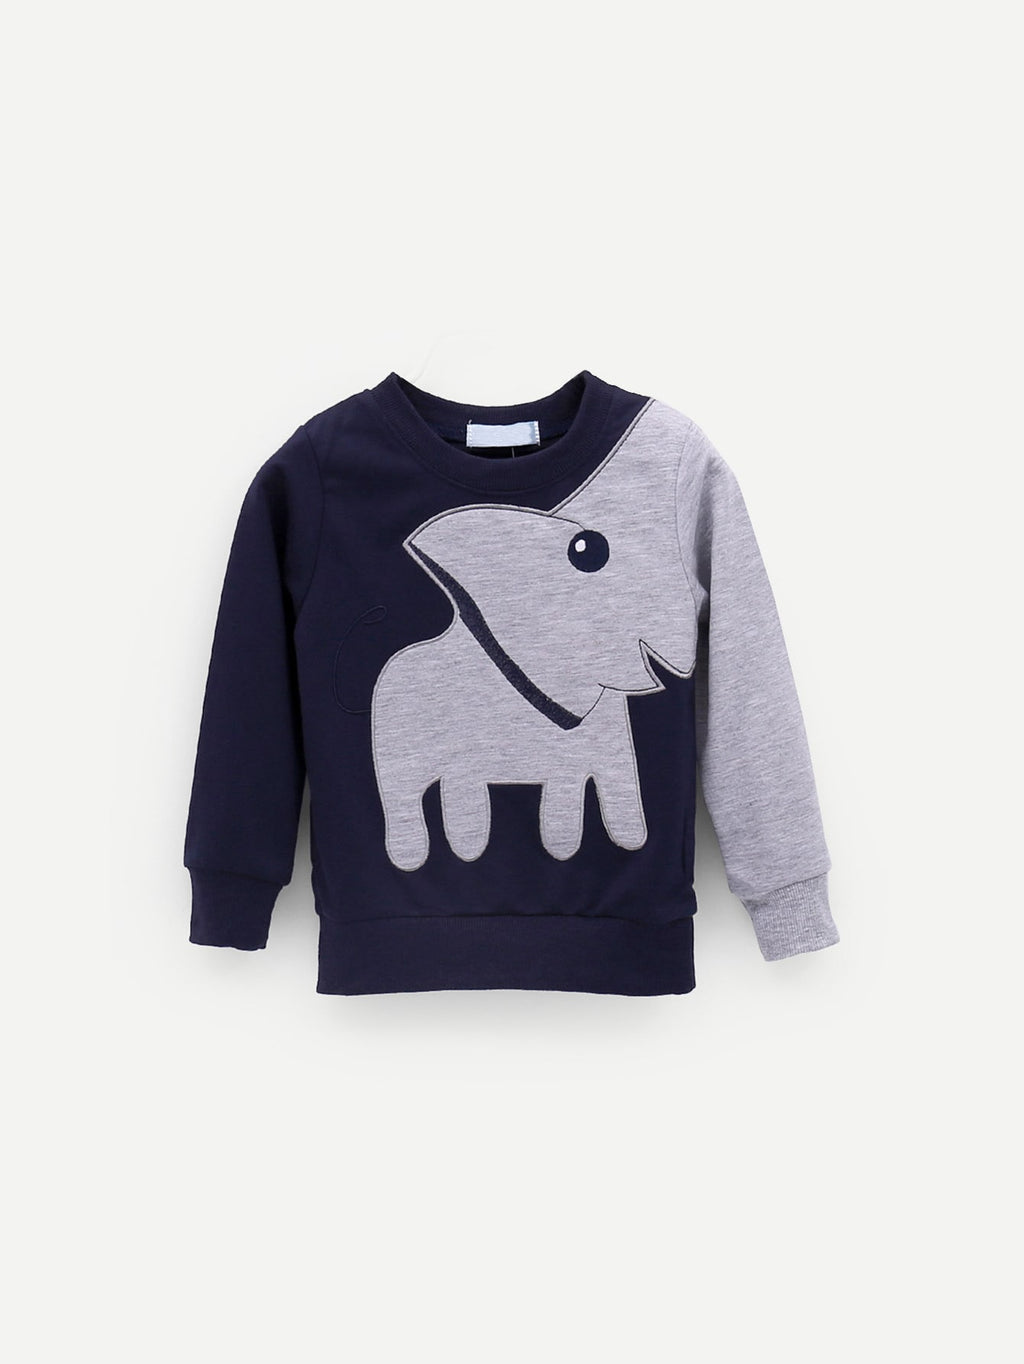 Toddler Boy Sweatshirt - Elephant Print Sweatshirt